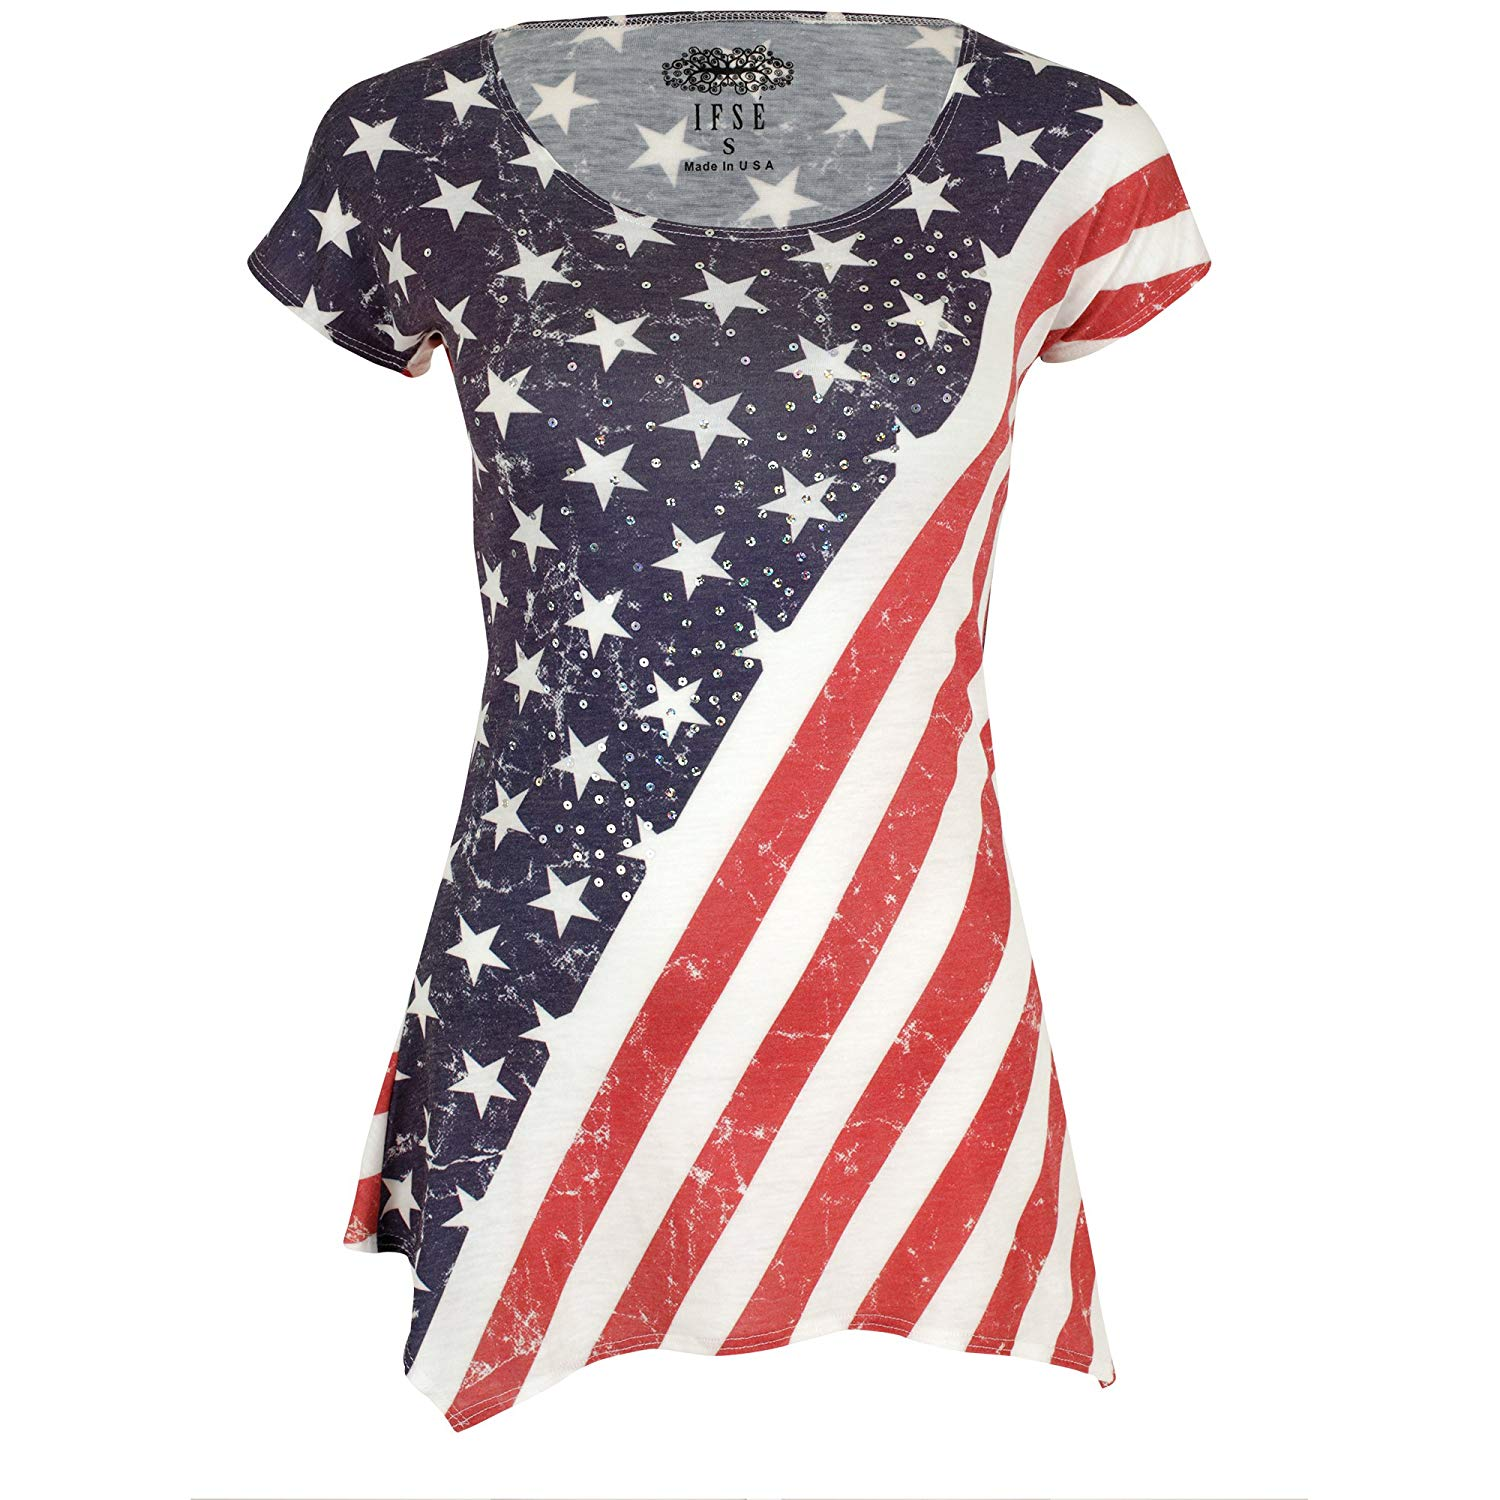 9bd6b3035e6ce1 Get Quotations · GreaterGood American Flag Sequin Tee